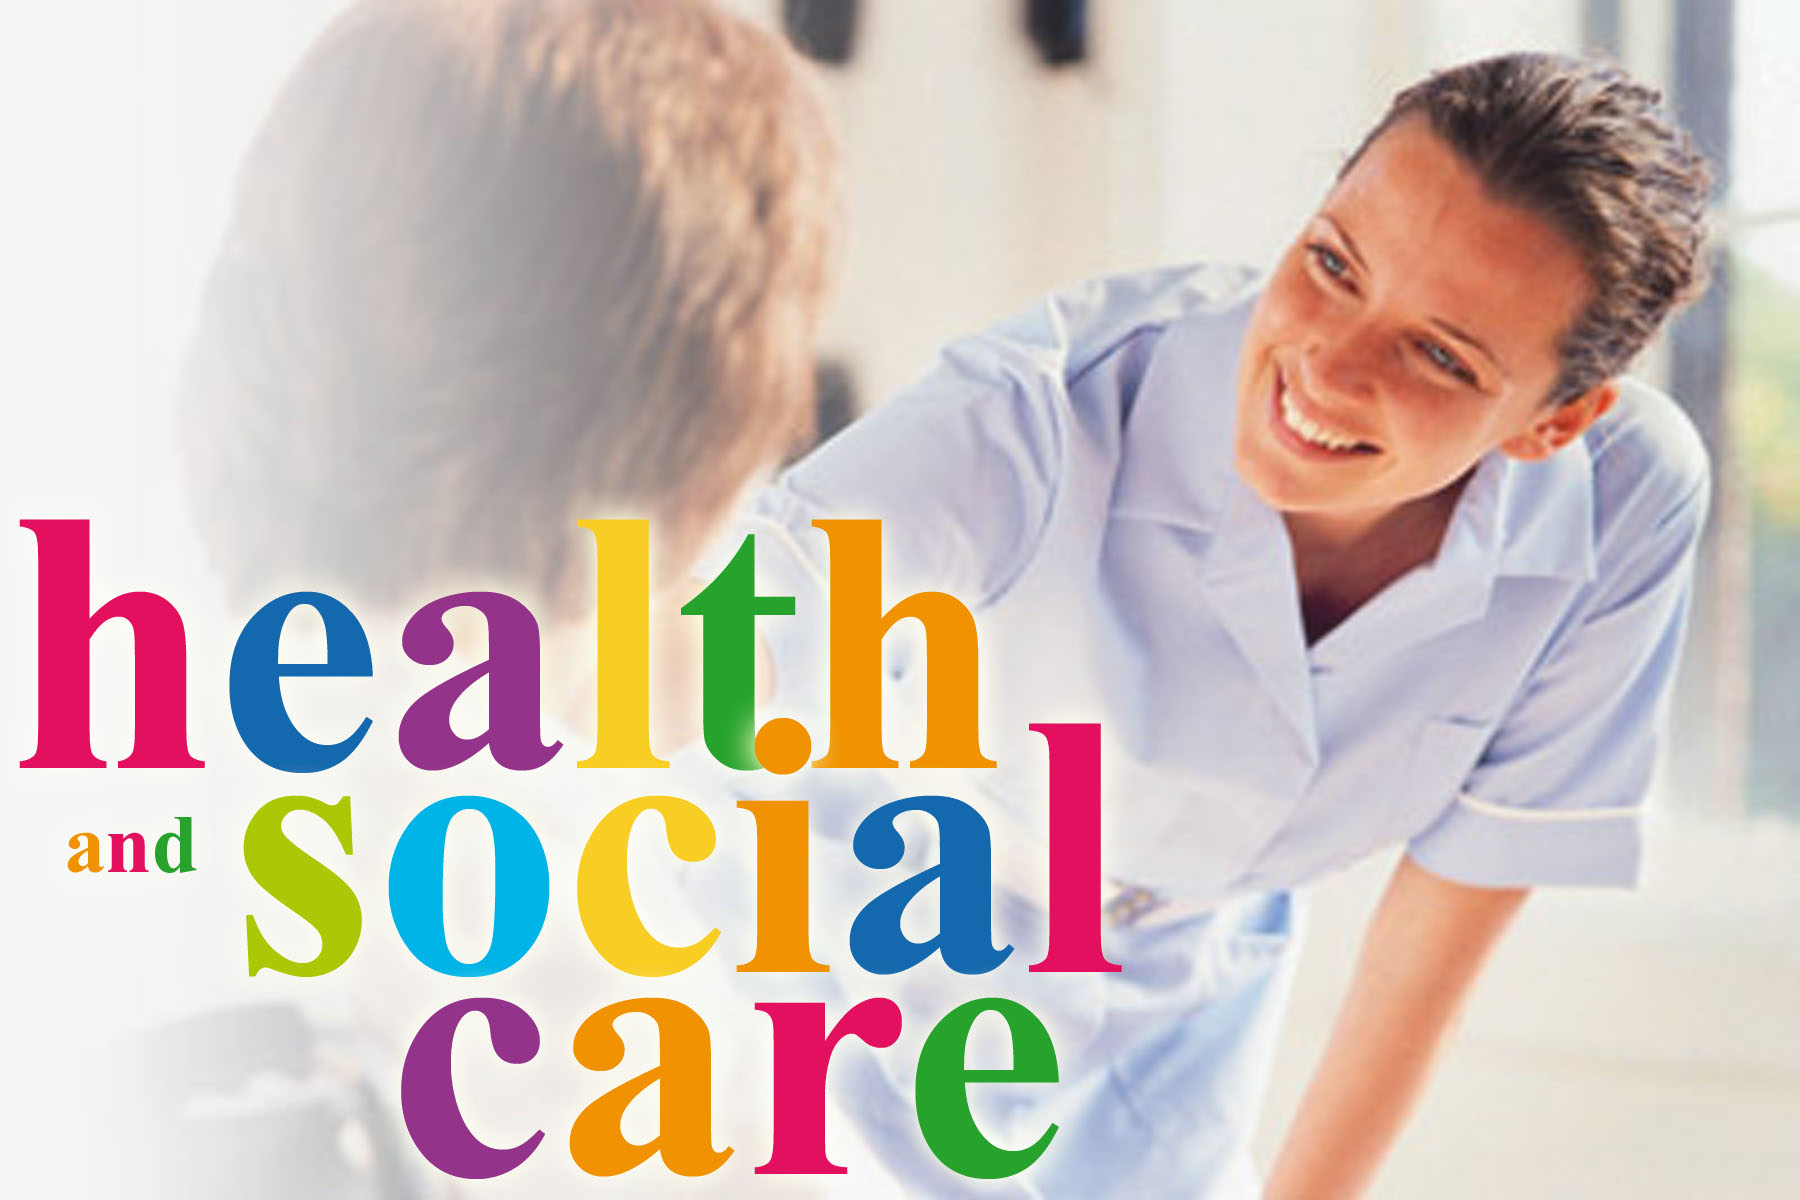 Unit 3 quality in health and social care Assignment, Uk assignment writing service